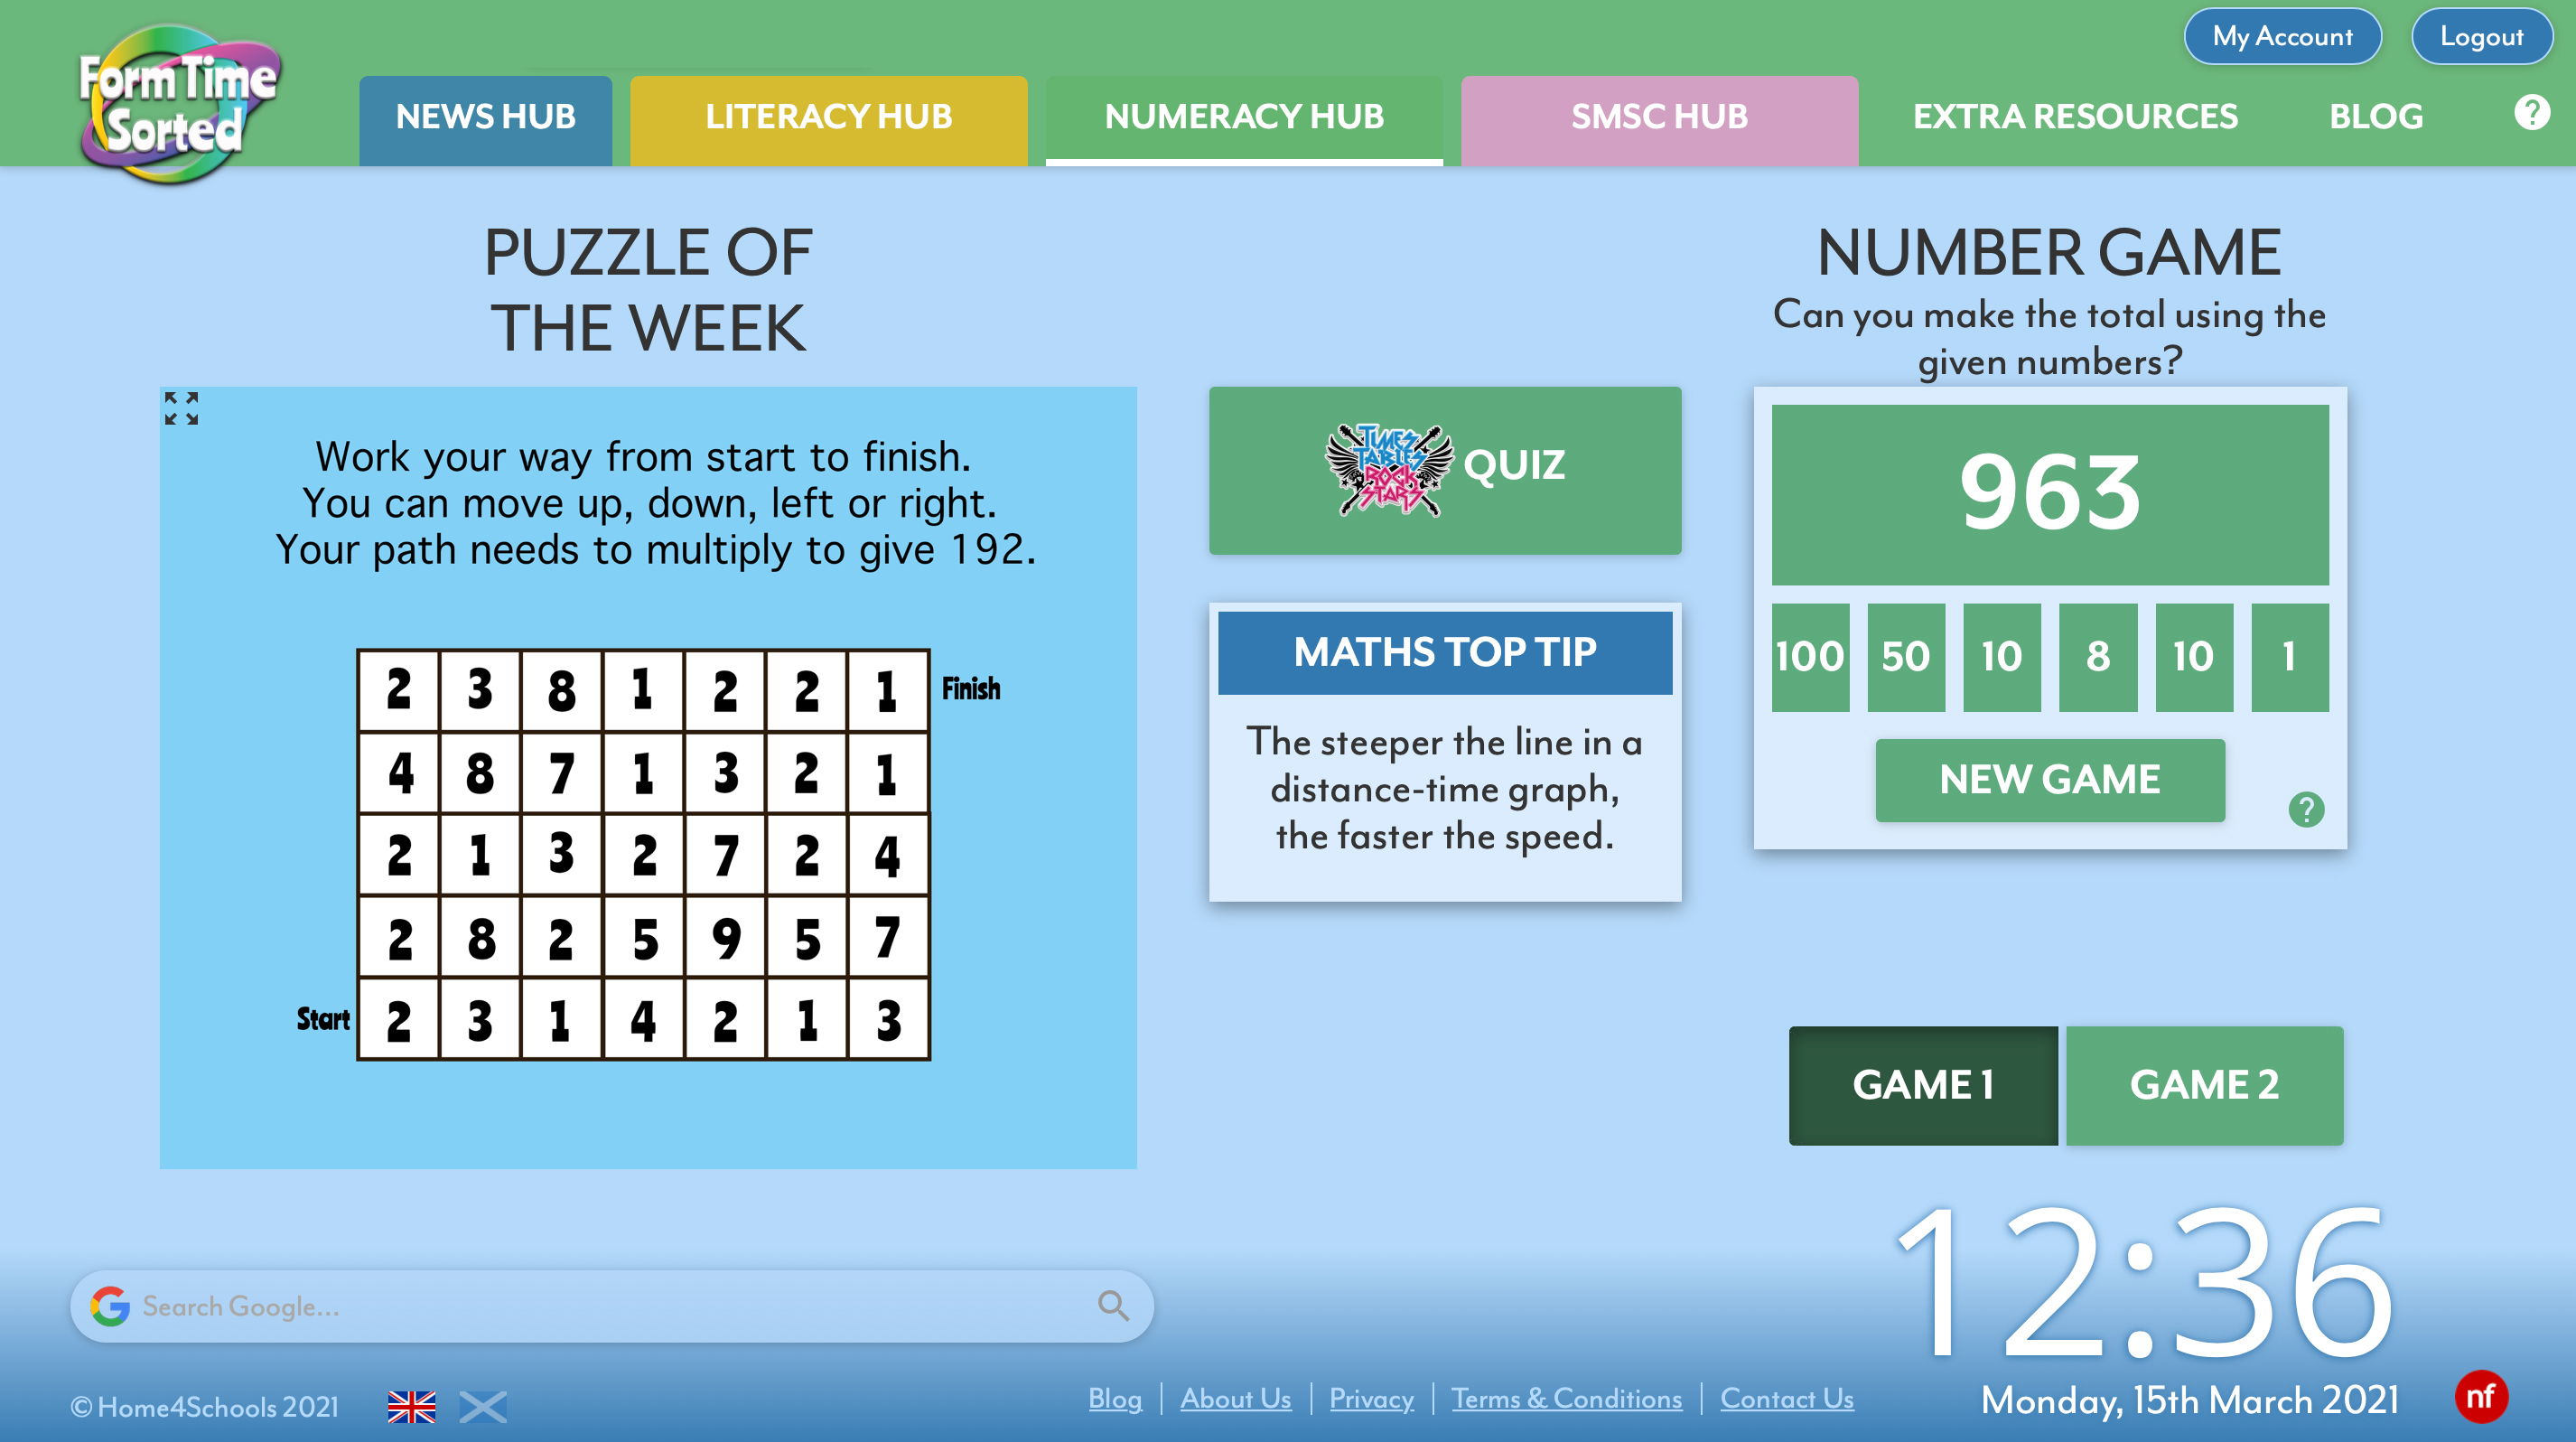 Numeracy Hub Screenshot